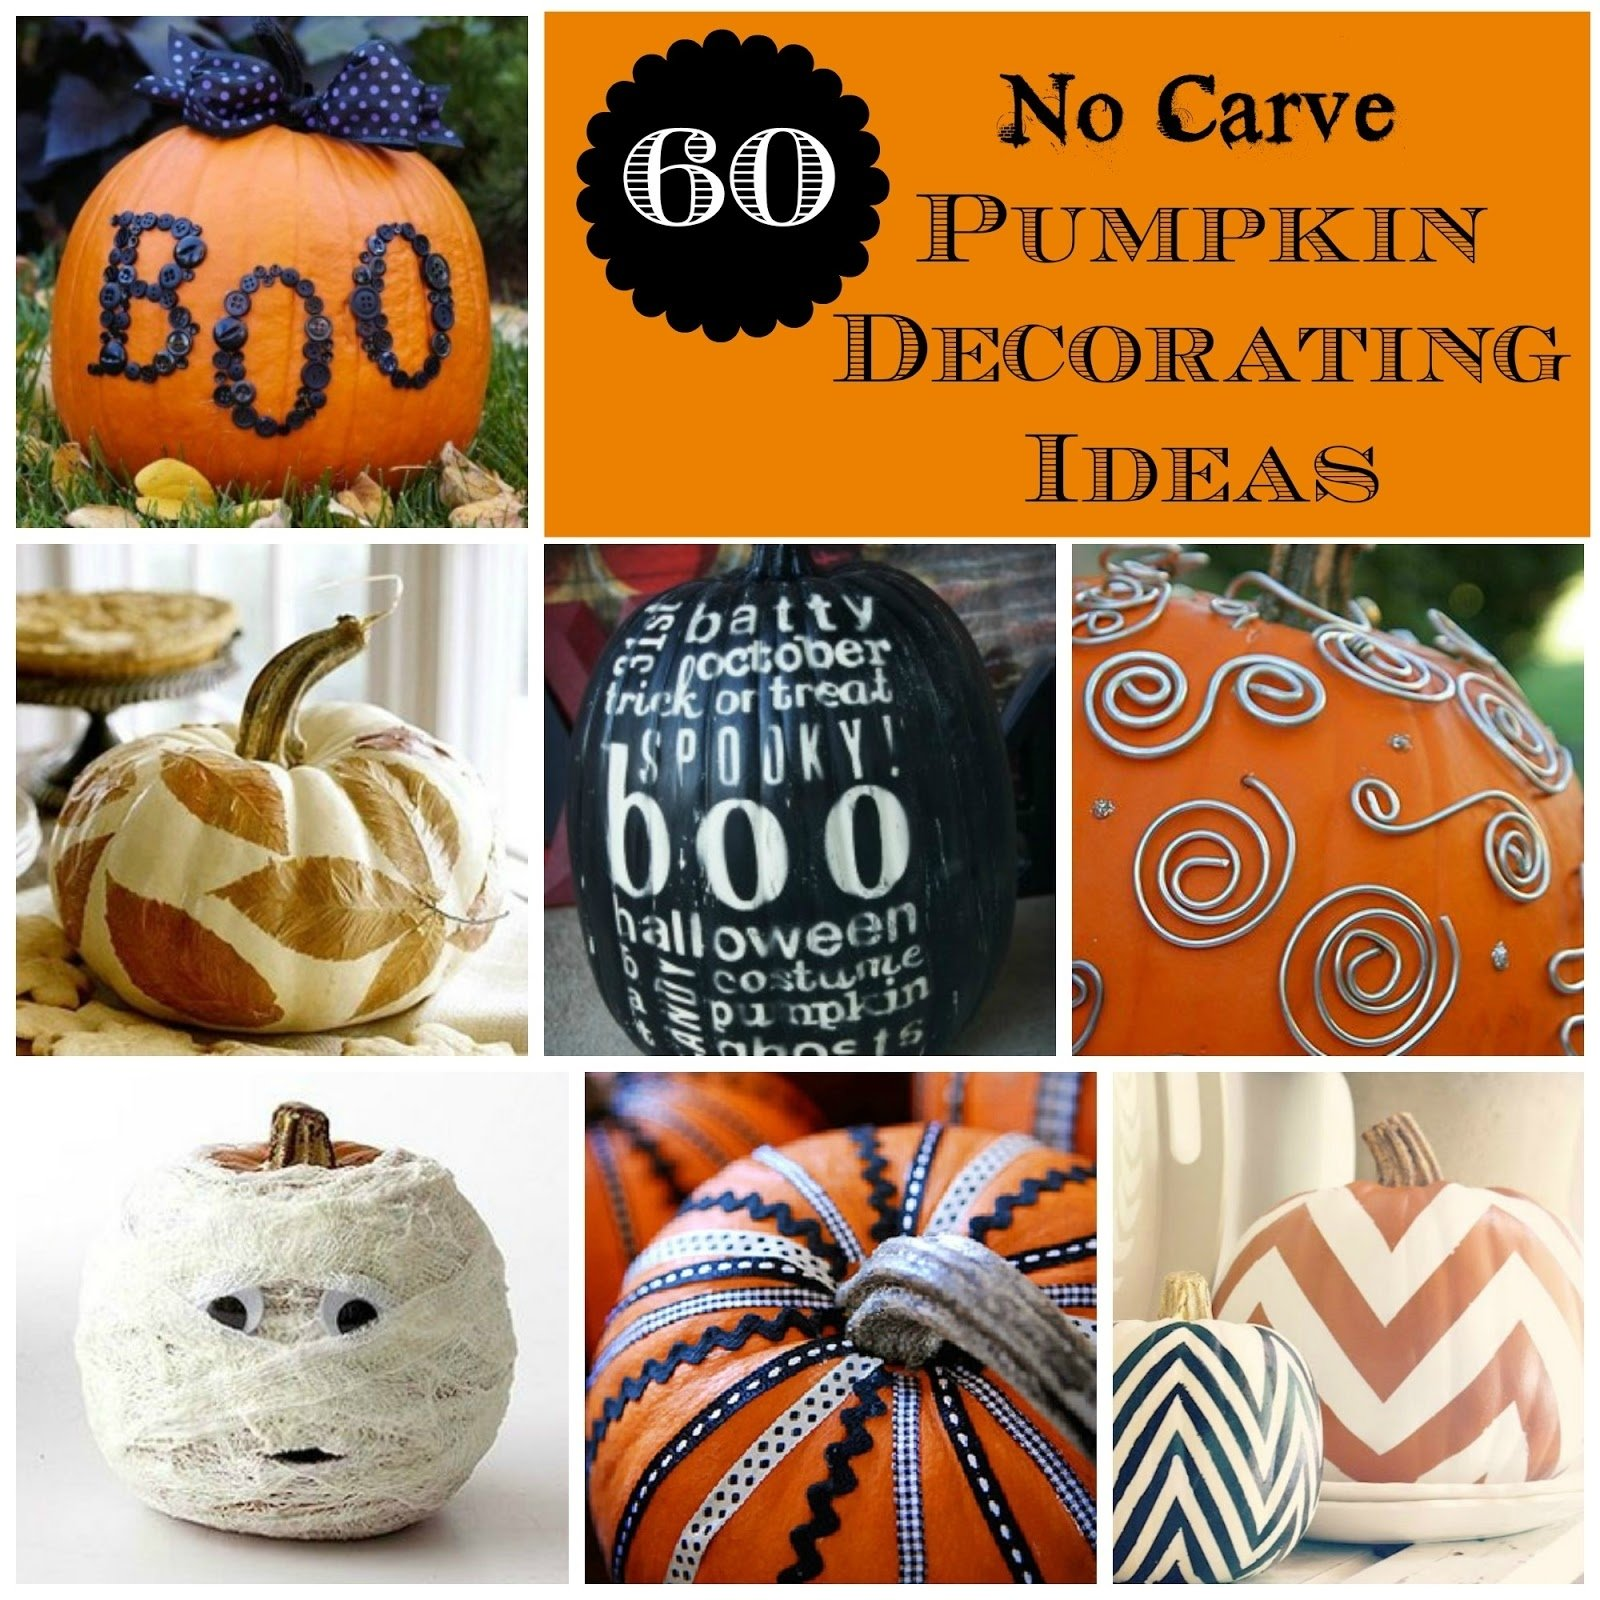 10 Beautiful Easy Pumpkin Decorating Ideas Without Carving Pumpkin all things katie marie 60 no carve pumpkin decorating ideas 6 2020